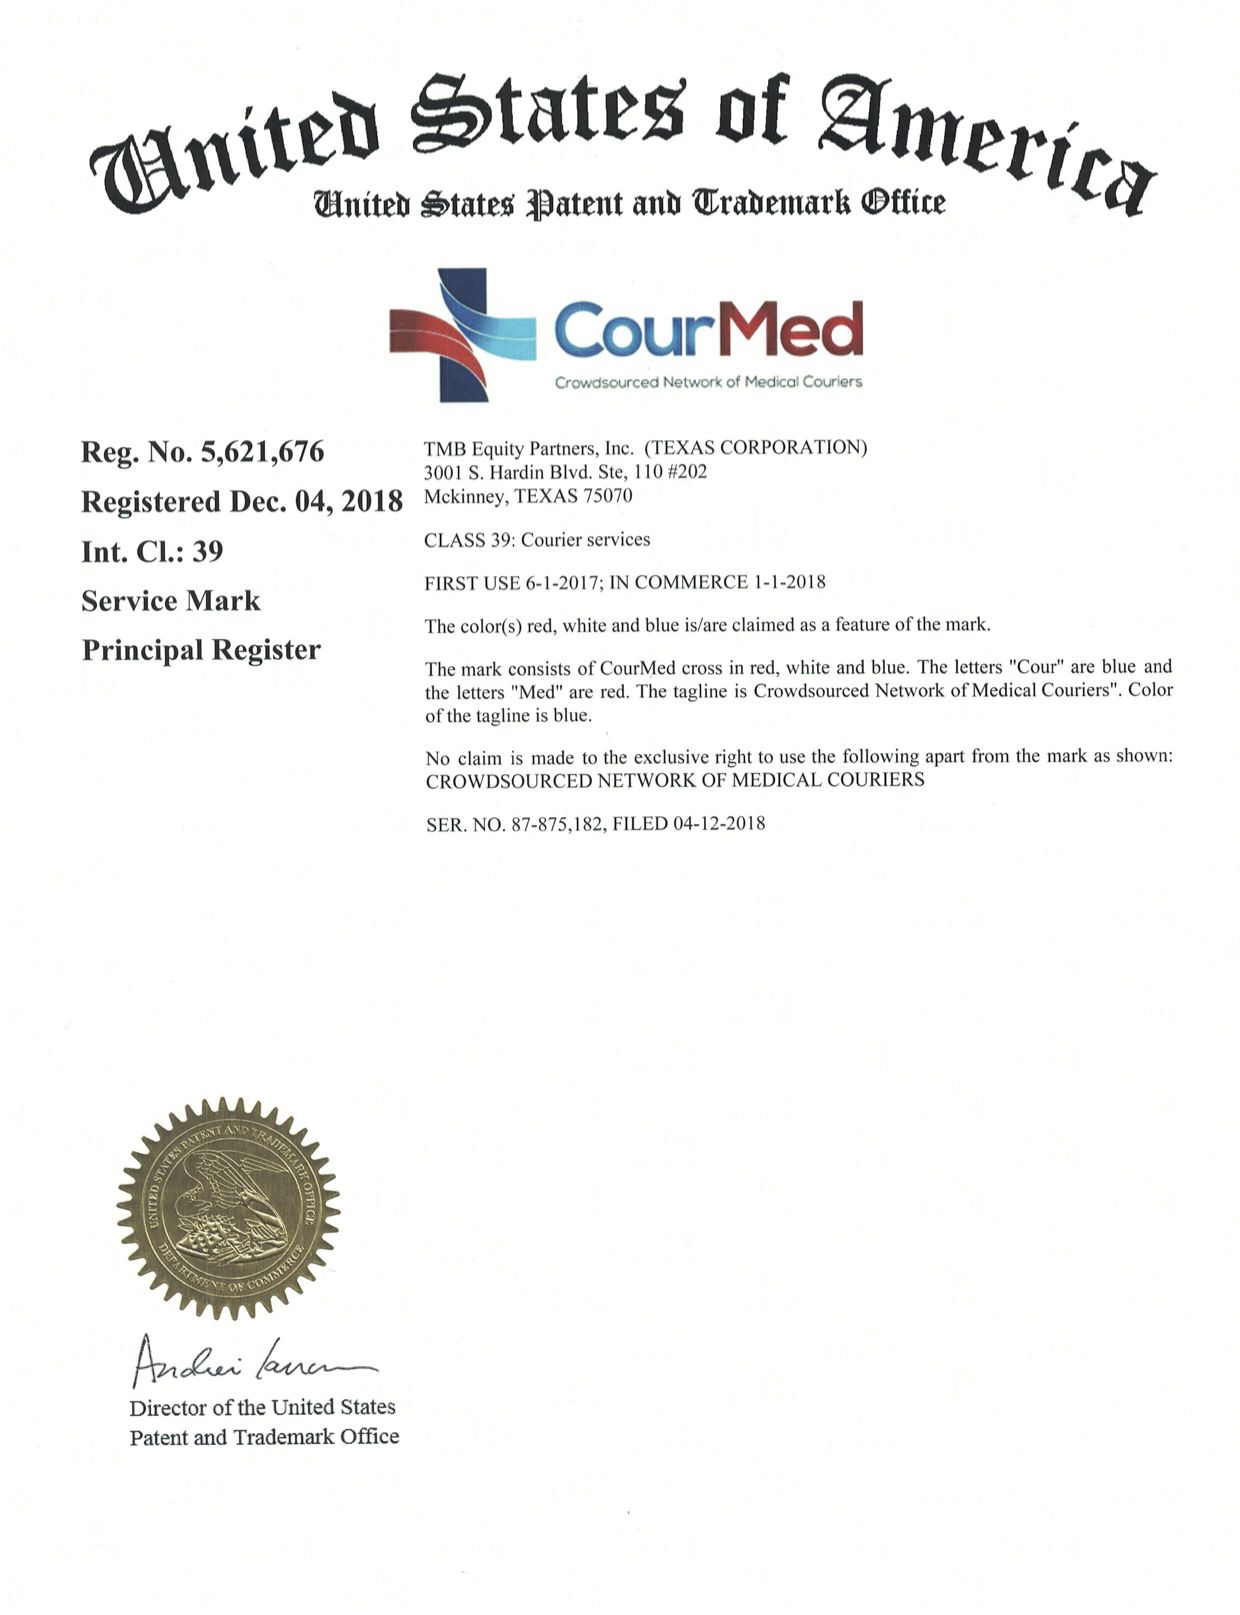 CourMed...United States Patent and Trademark Office